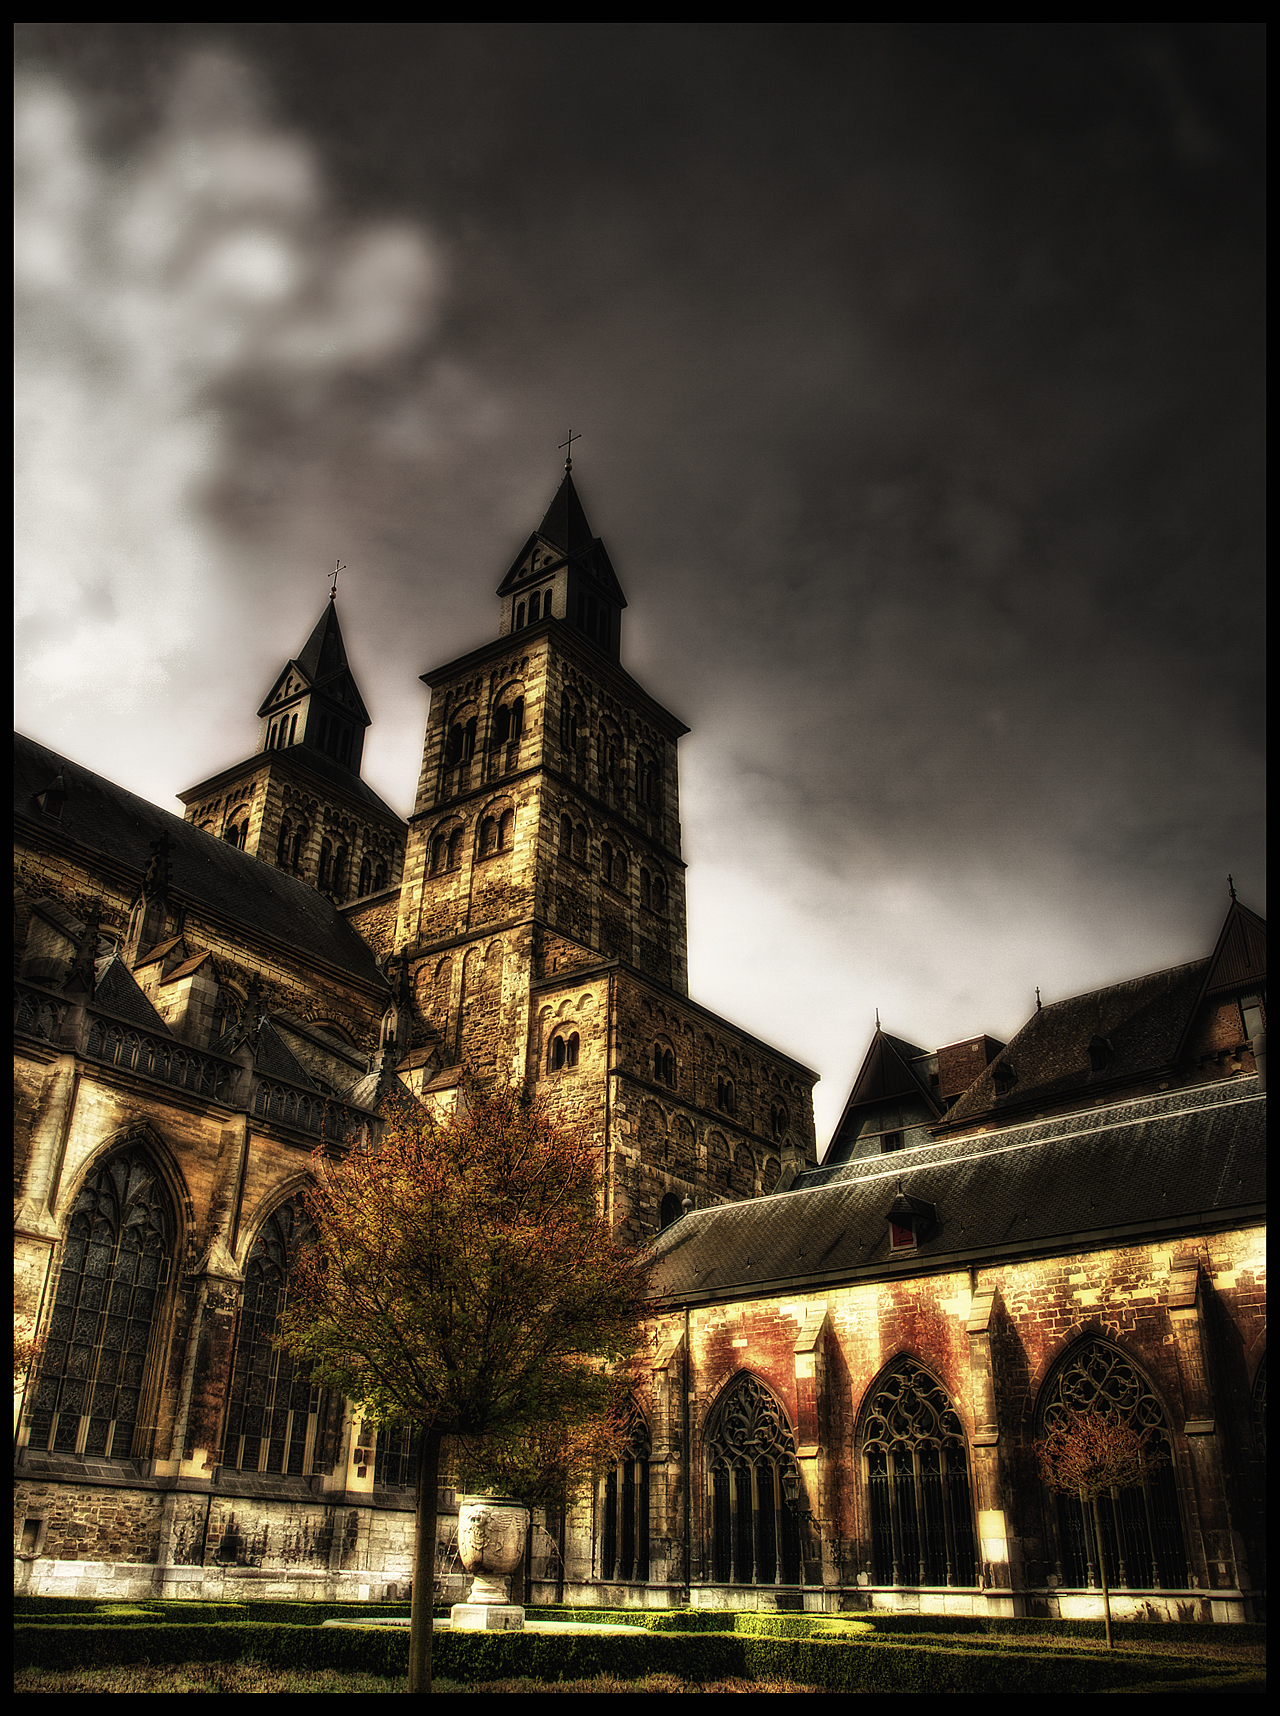 Basilica of Saint Servatius by Riot23